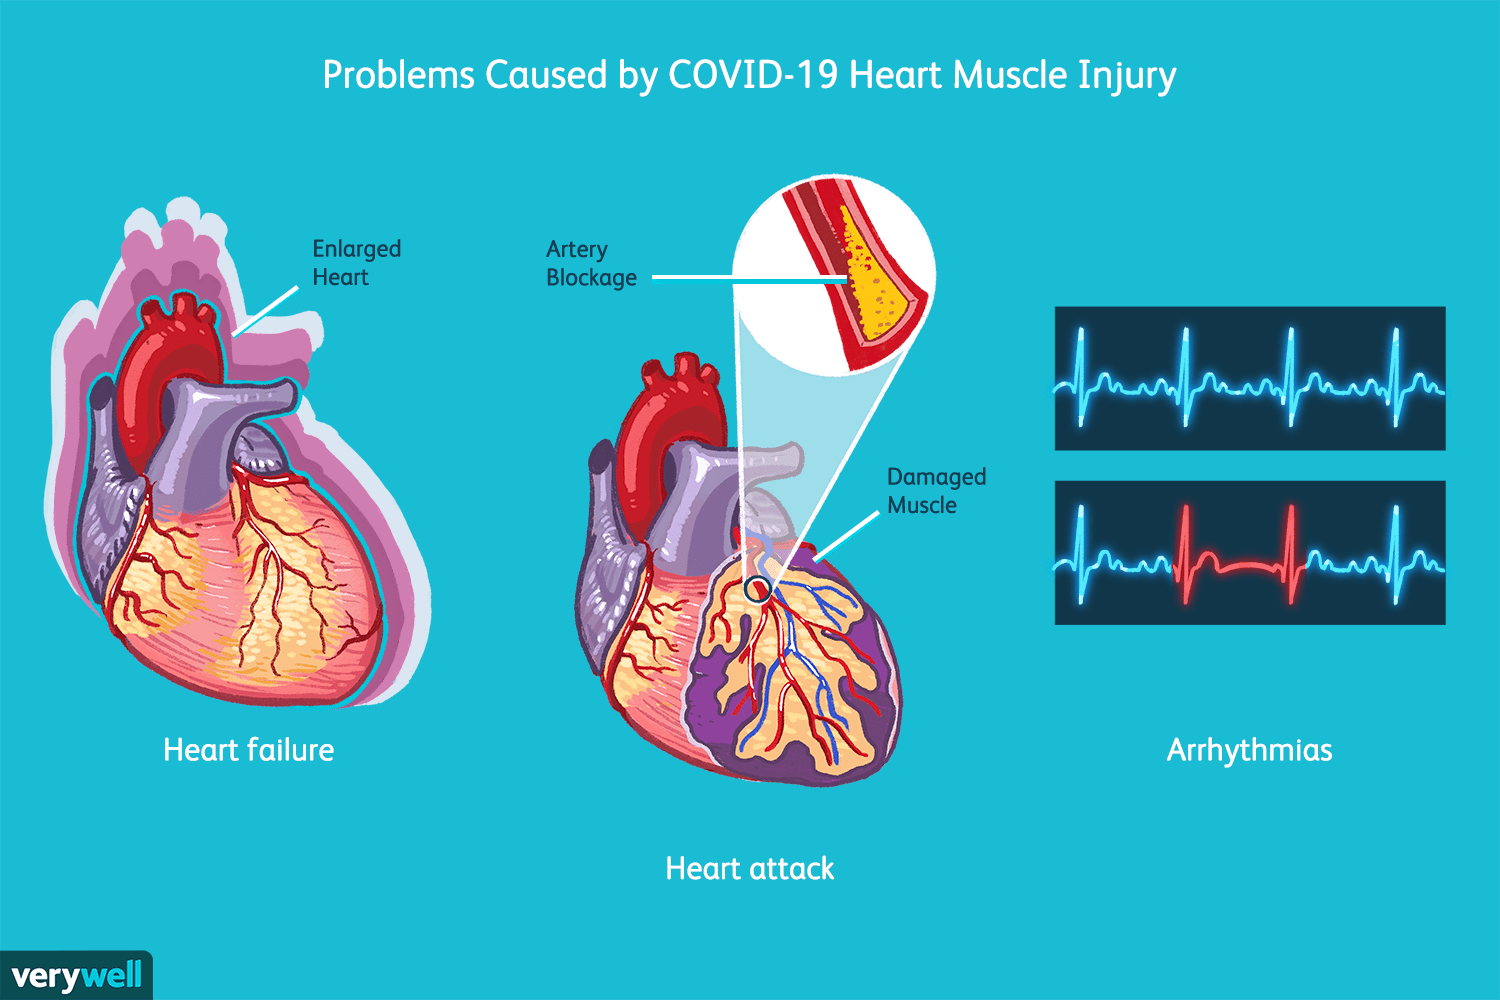 heart muscle injury and covid-19